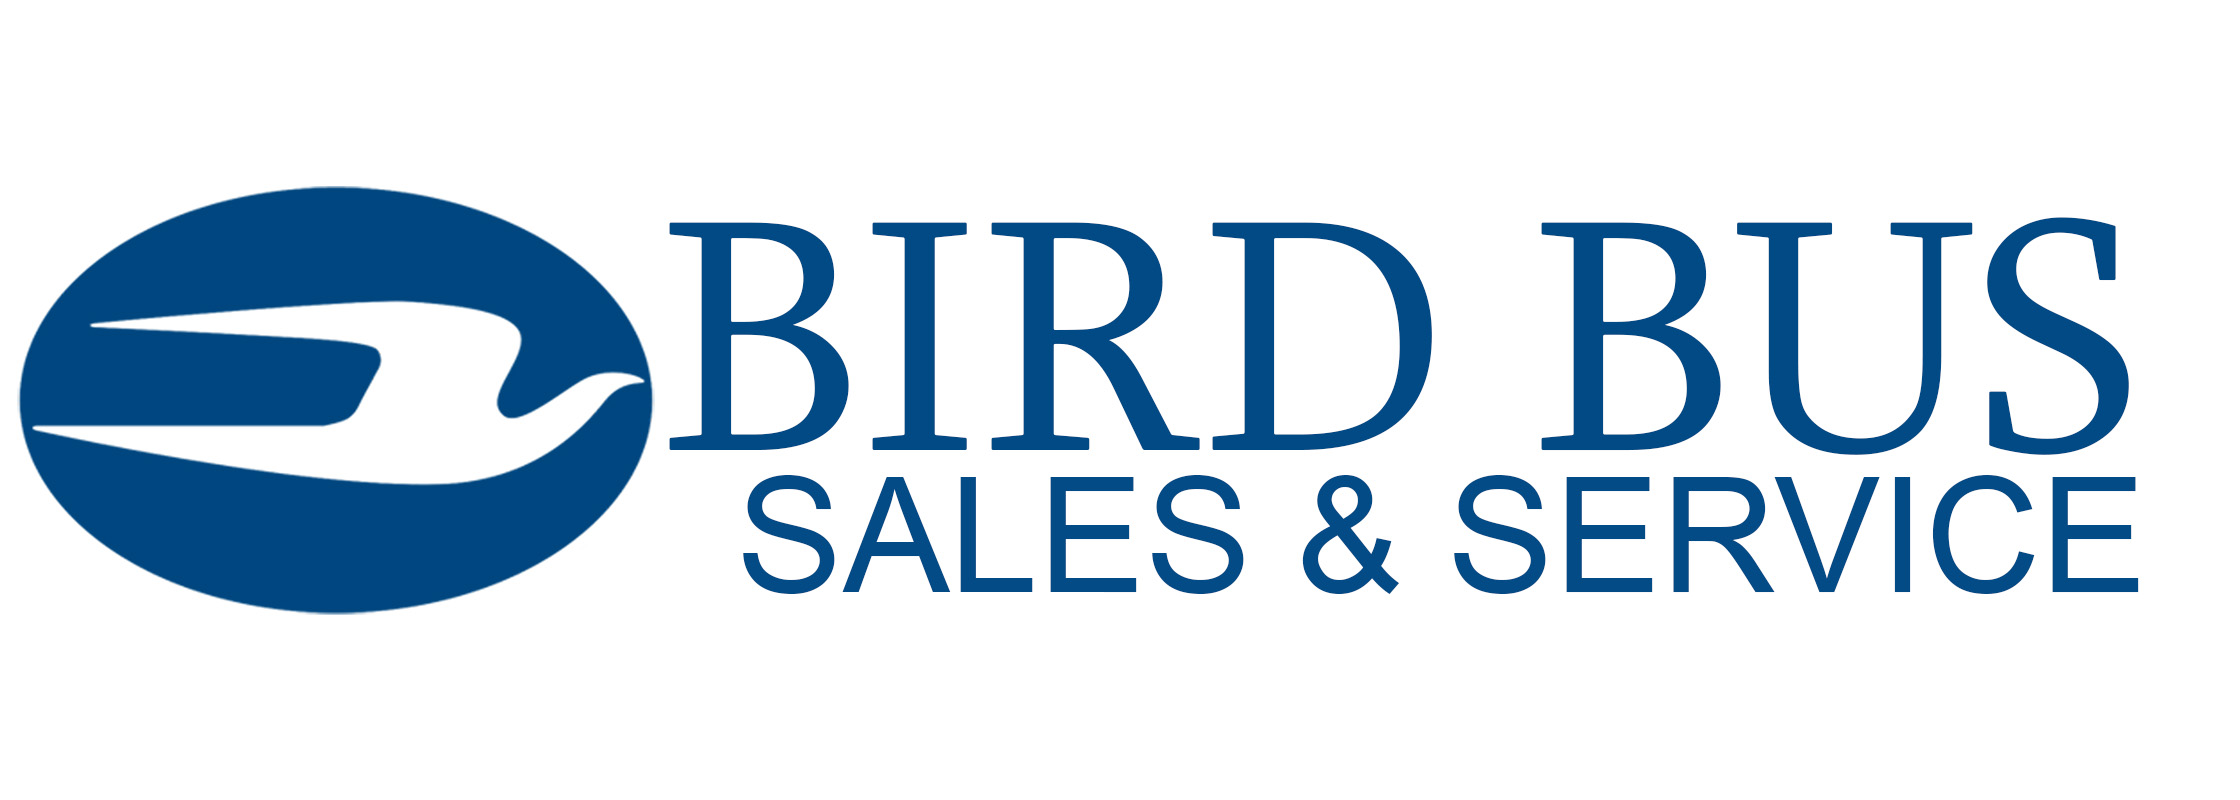 BIRD BUS SALES LOGO